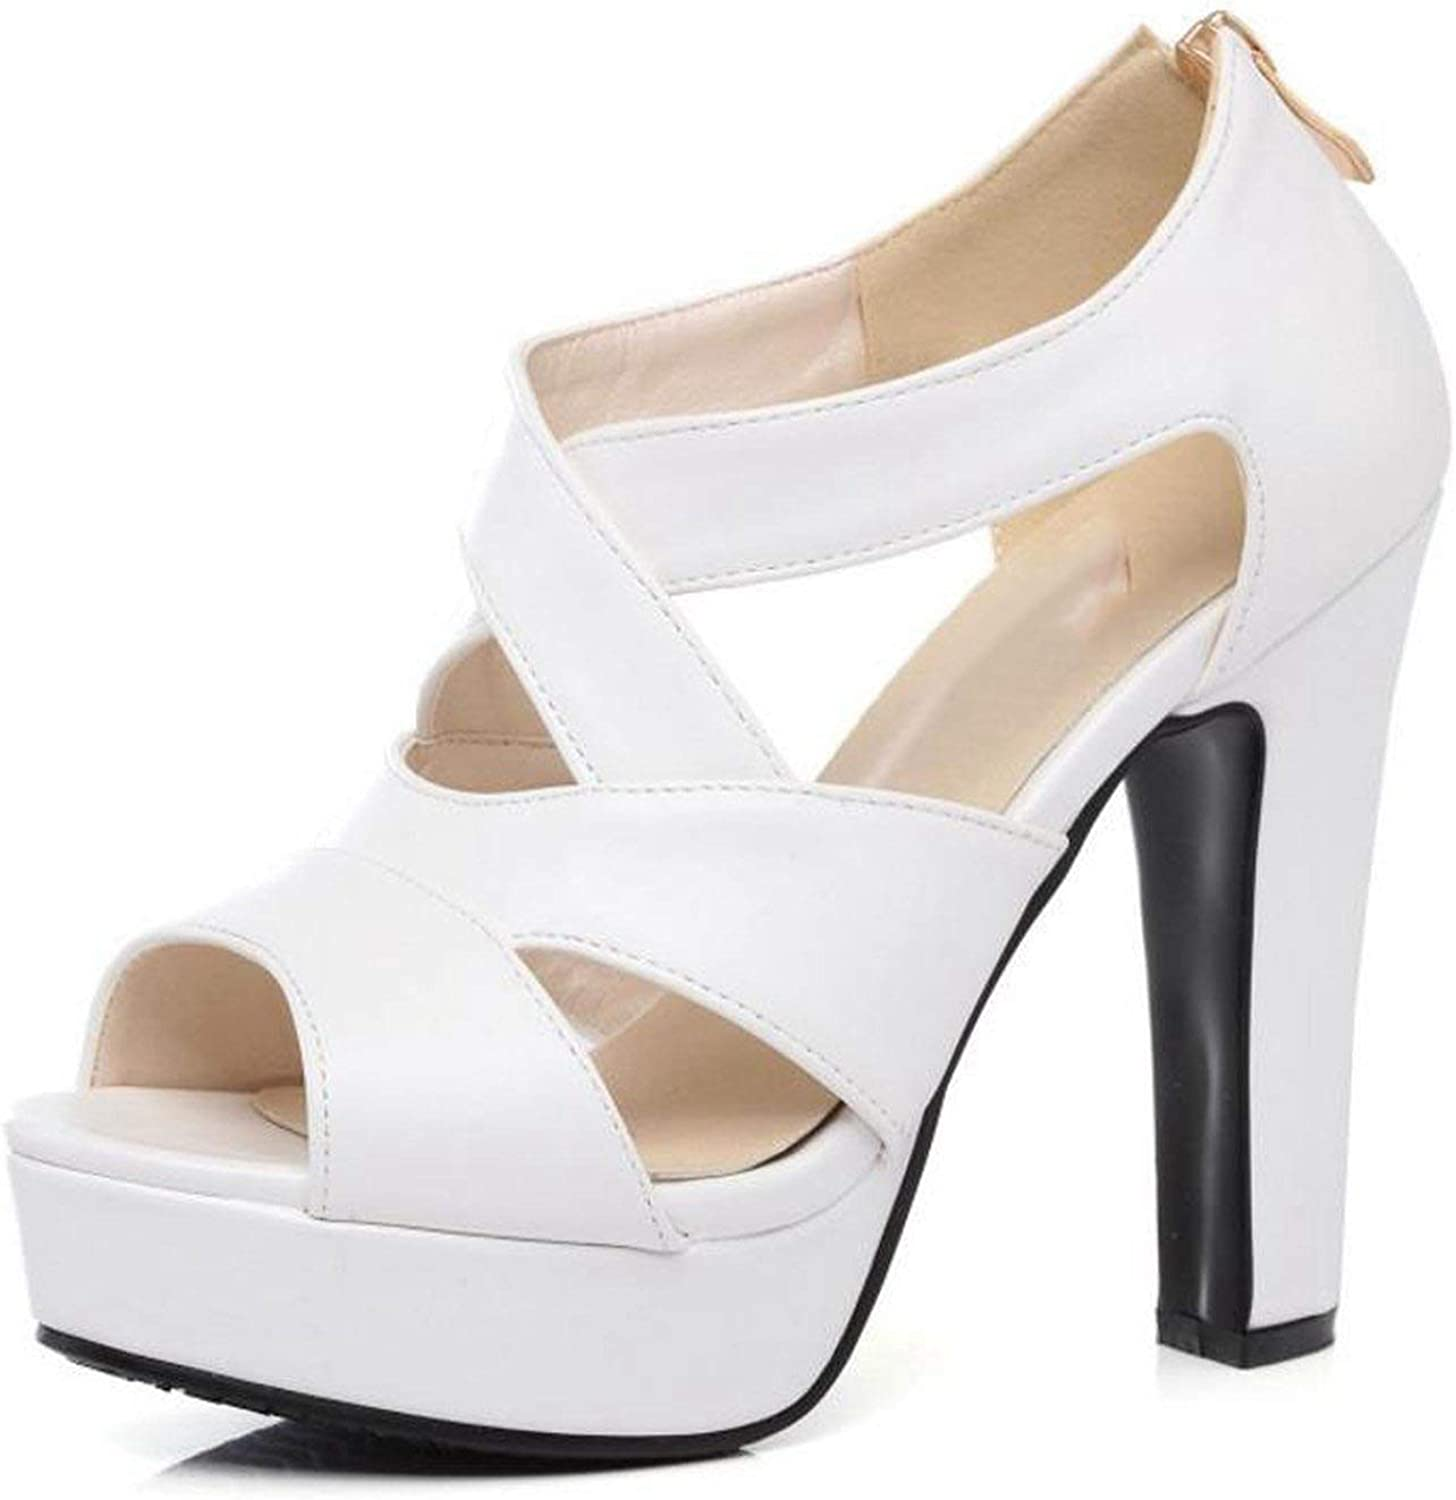 Houfeoans Size 31-43 Sexy Peep Toe White Gladiator Sandals Summer shoes Thick High Heel Zipper shoes